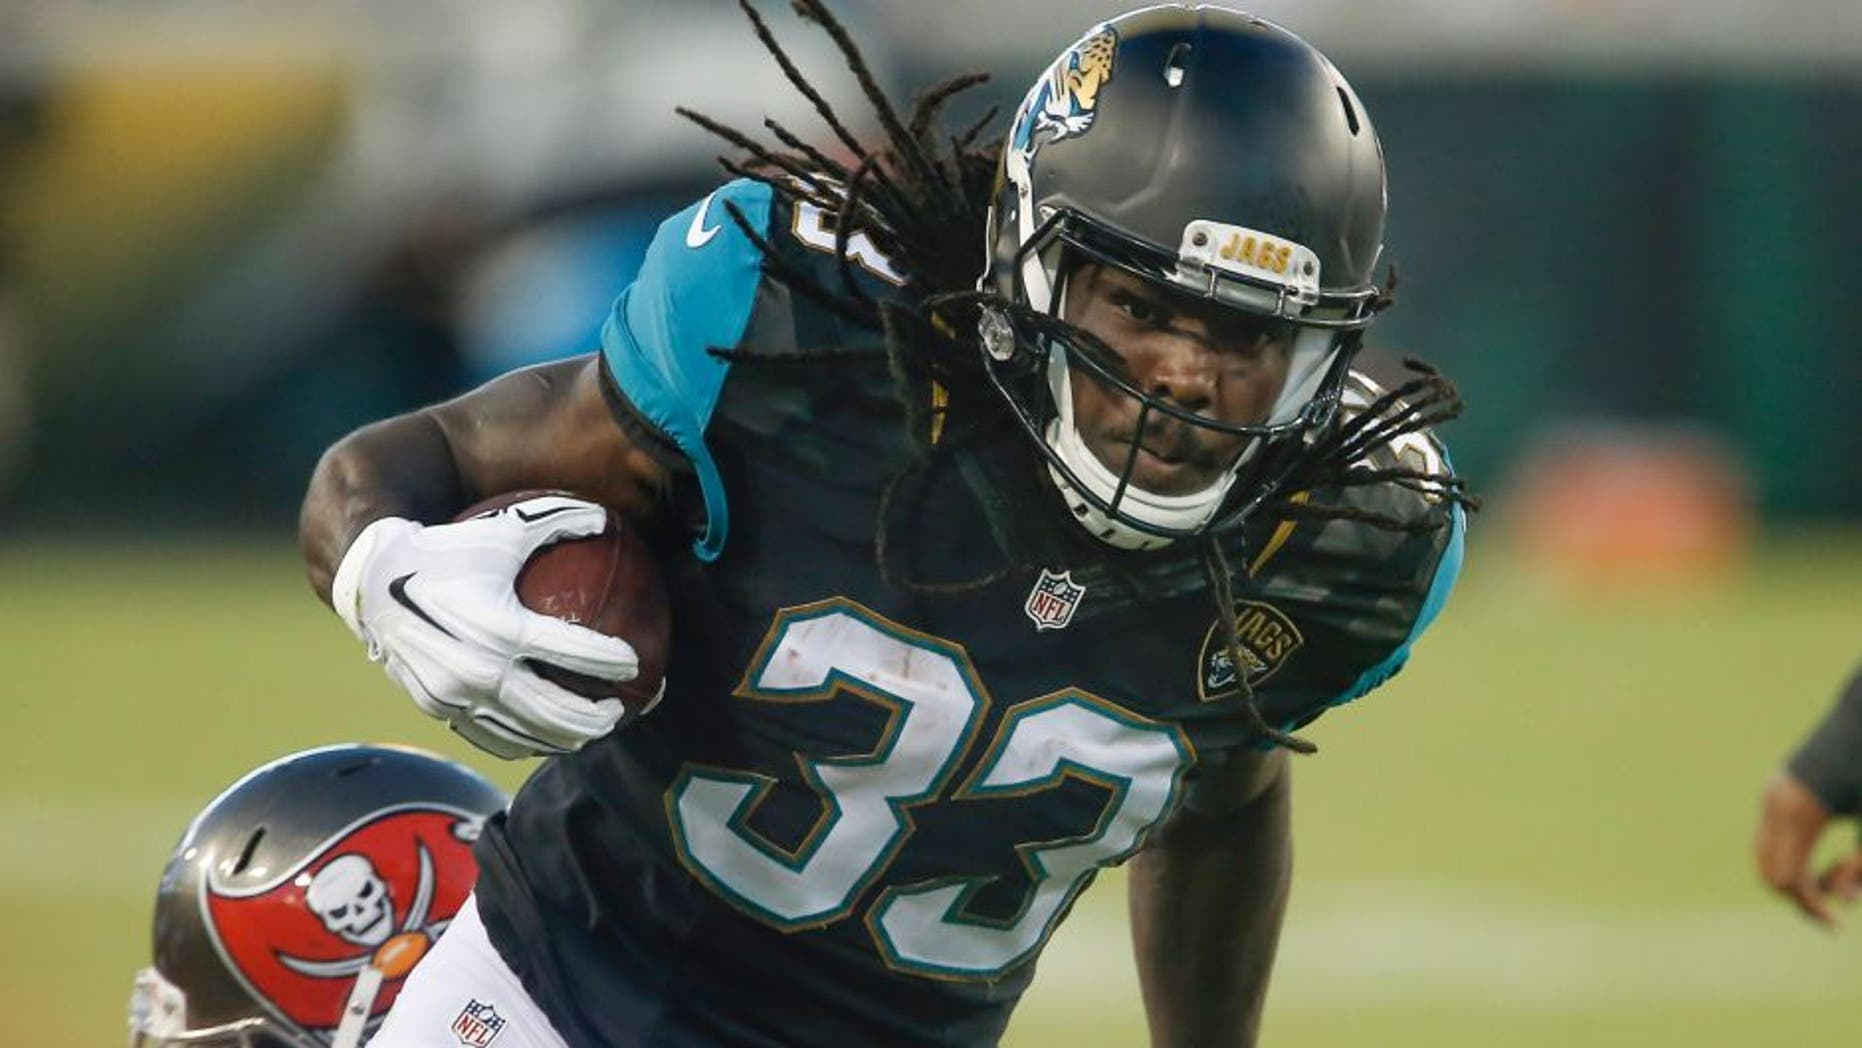 Aug 20, 2016; Jacksonville, FL, USA; Jacksonville Jaguars running back Chris Ivory (33) runs during the first quarter of a football game against the Tampa Bay Buccaneers at EverBank Field. Mandatory Credit: Reinhold Matay-USA TODAY Sports